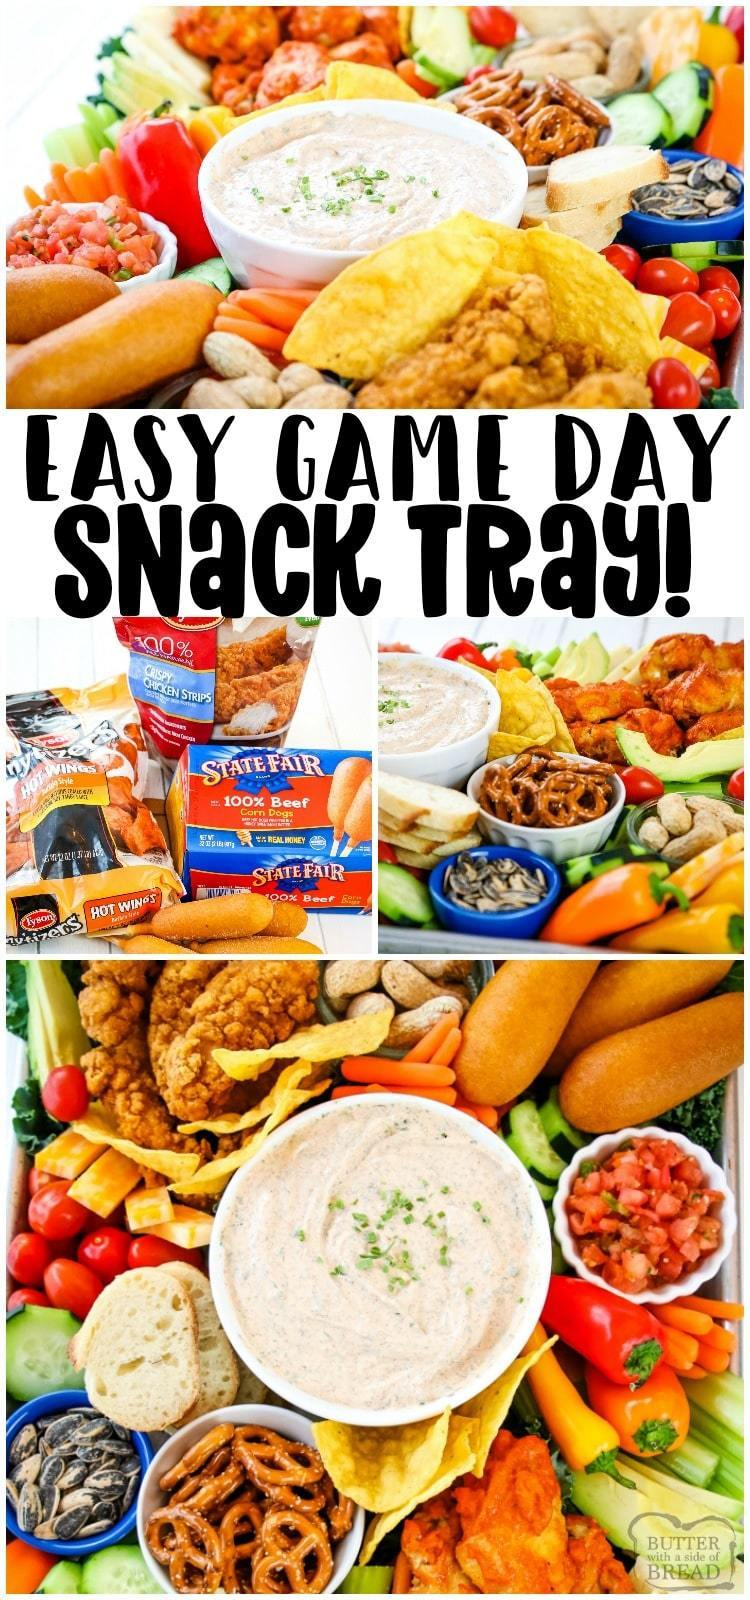 Smoky Homemade Ranch Dip served with all your game day favorites: hot wings, chicken strips & more! Wow the crowd with this savory game day snack tray that's delicious & easy to put together. #gameday #footballfood #appetizers #ranchdip #gamedaysnacks #gamedayfood